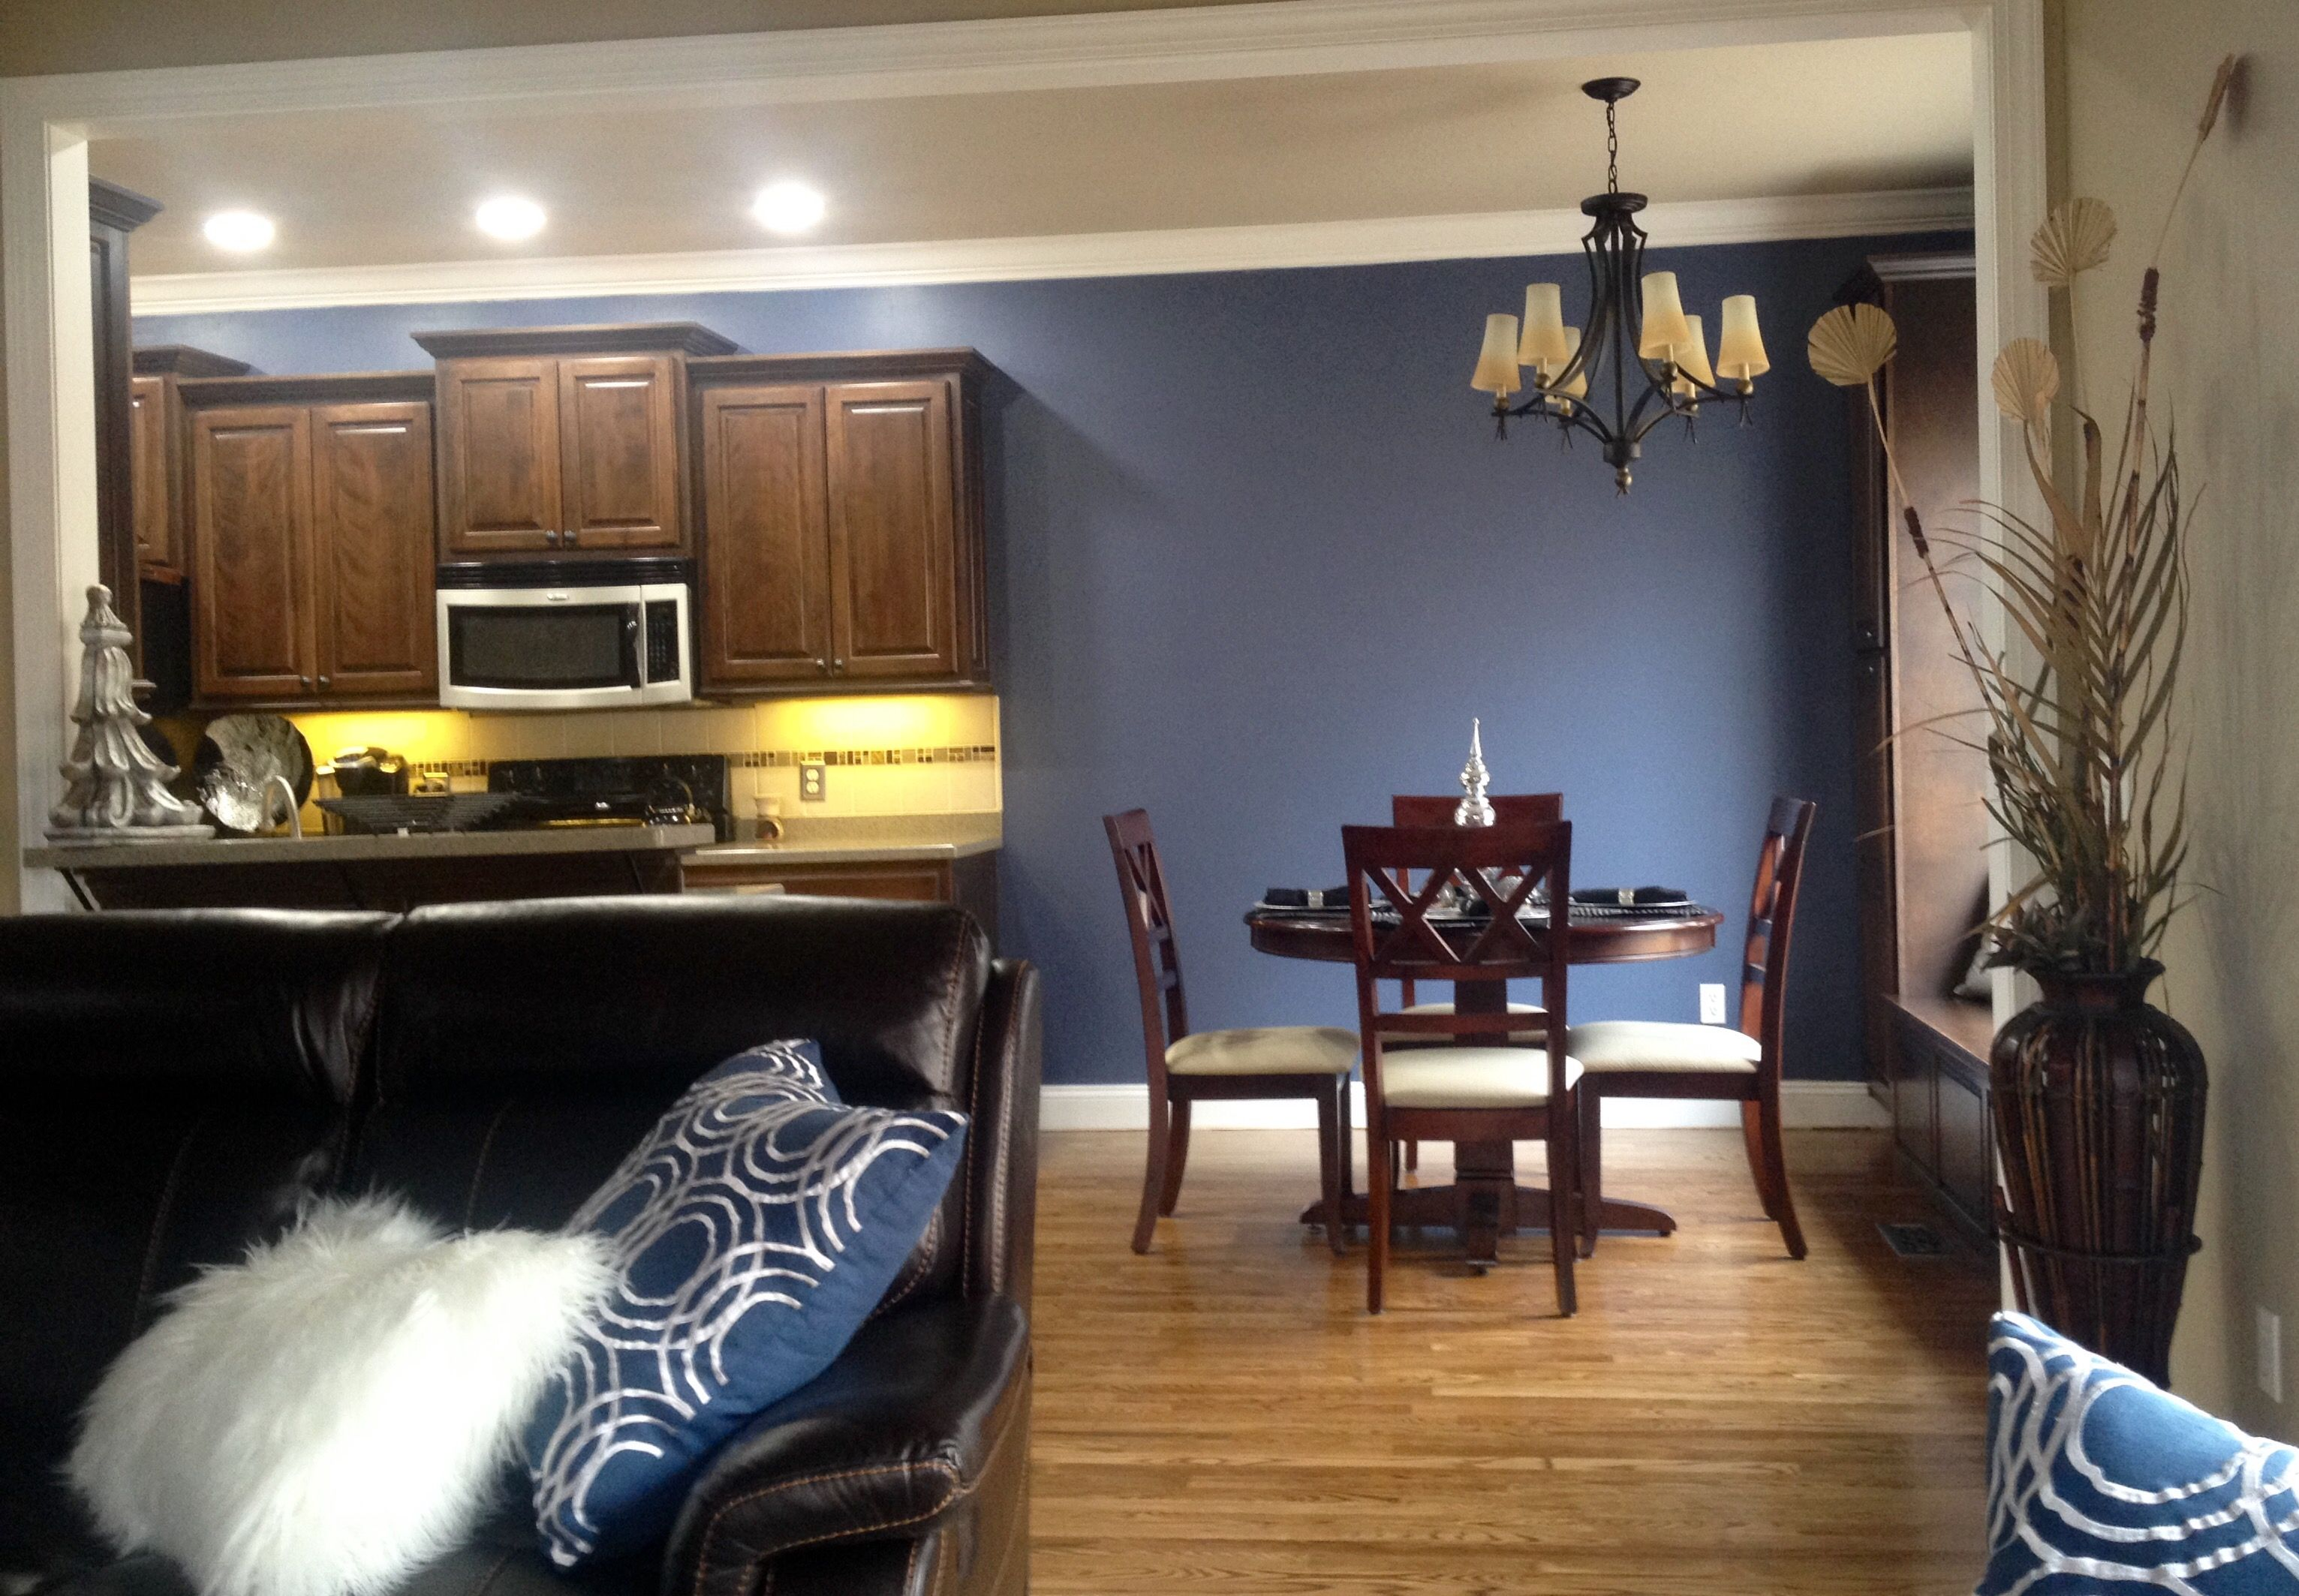 sherwin williams distance paint color family room on best neutral paint colors for living room sherwin williams living room id=51043